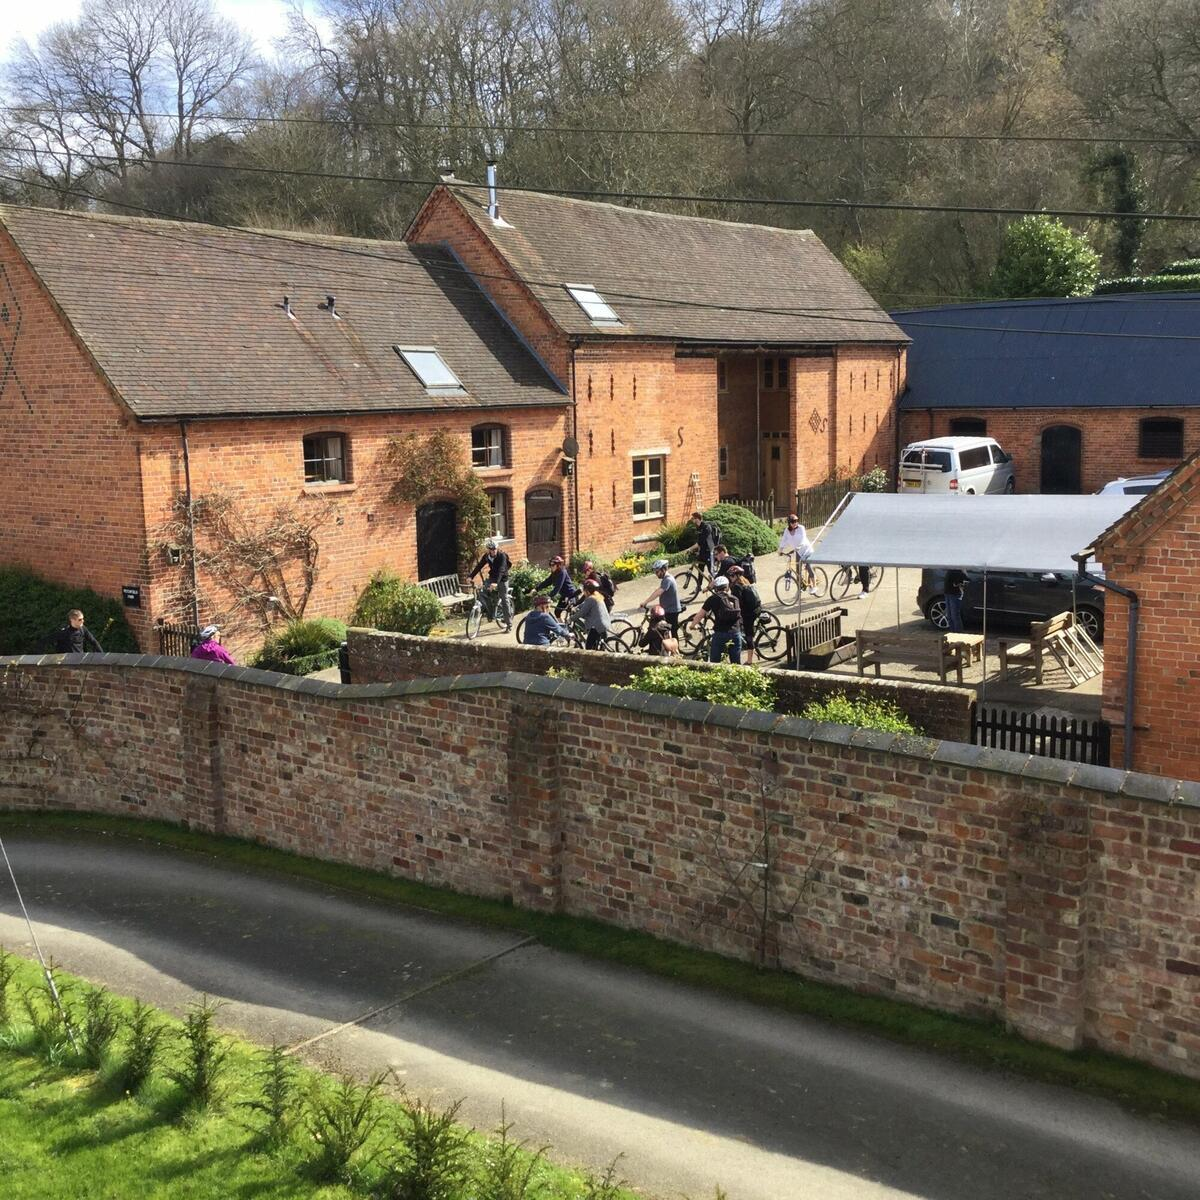 Starting your cycle hire at Wheely Wonderful's base at Petchfield Farm